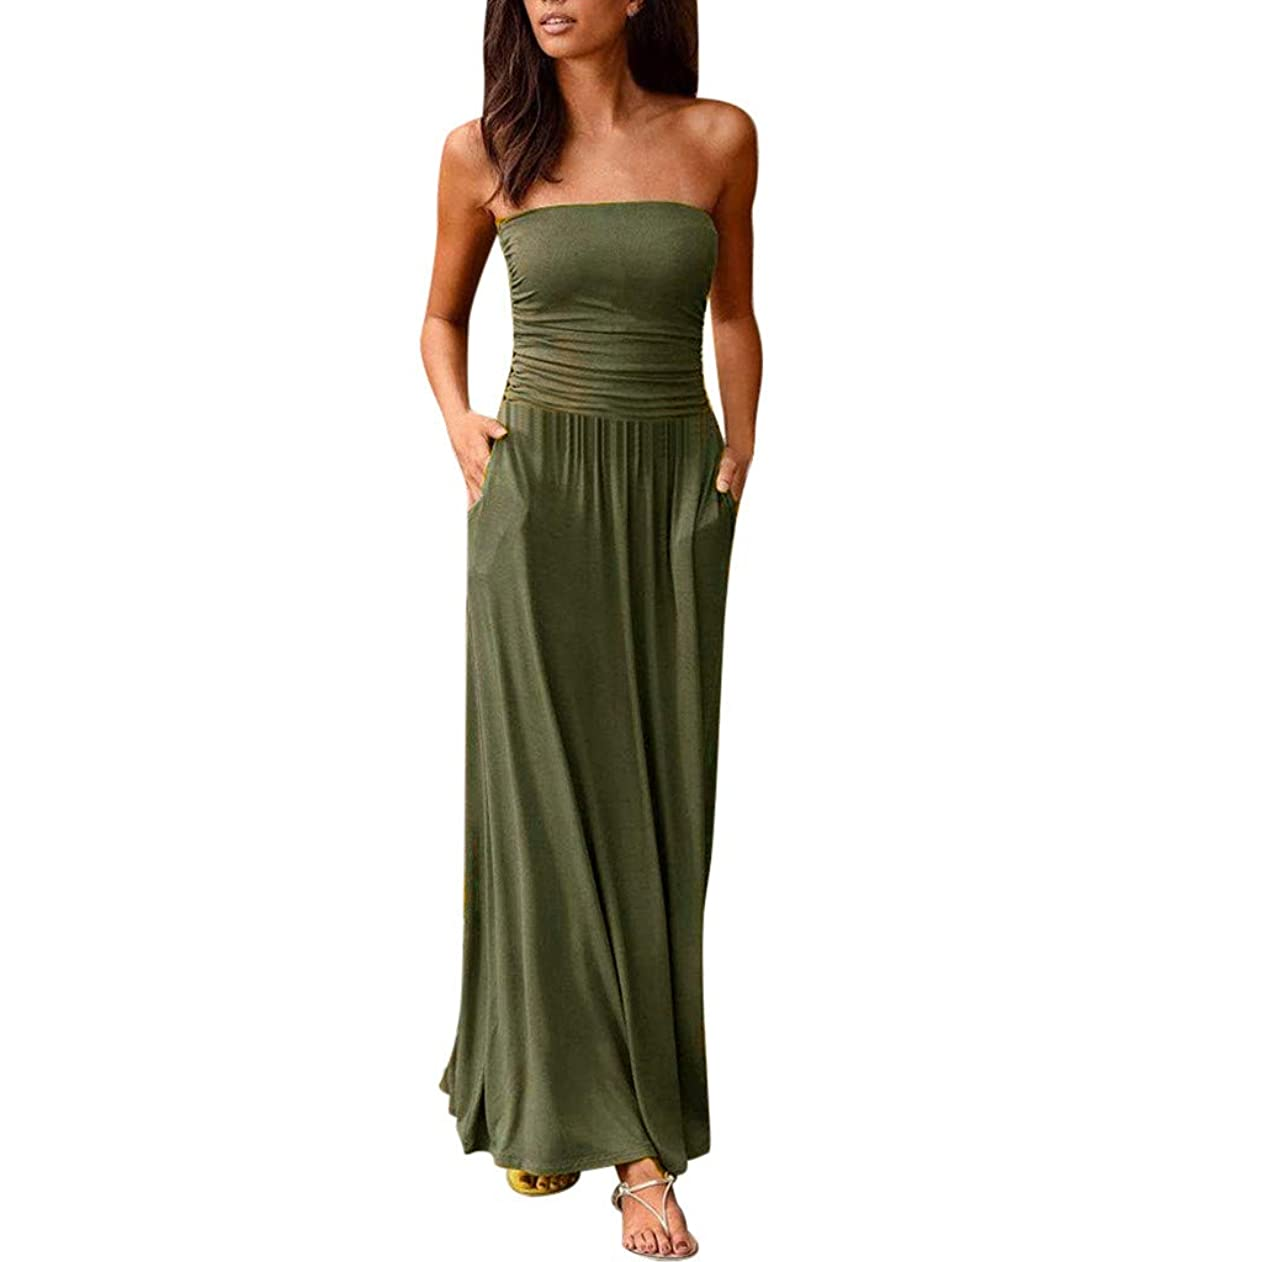 Womens Off Shoulder Long Dress Bandeau Slash Neck Ladies Summer Holiday Solid Maxi Dress ezidsztzrlv54343